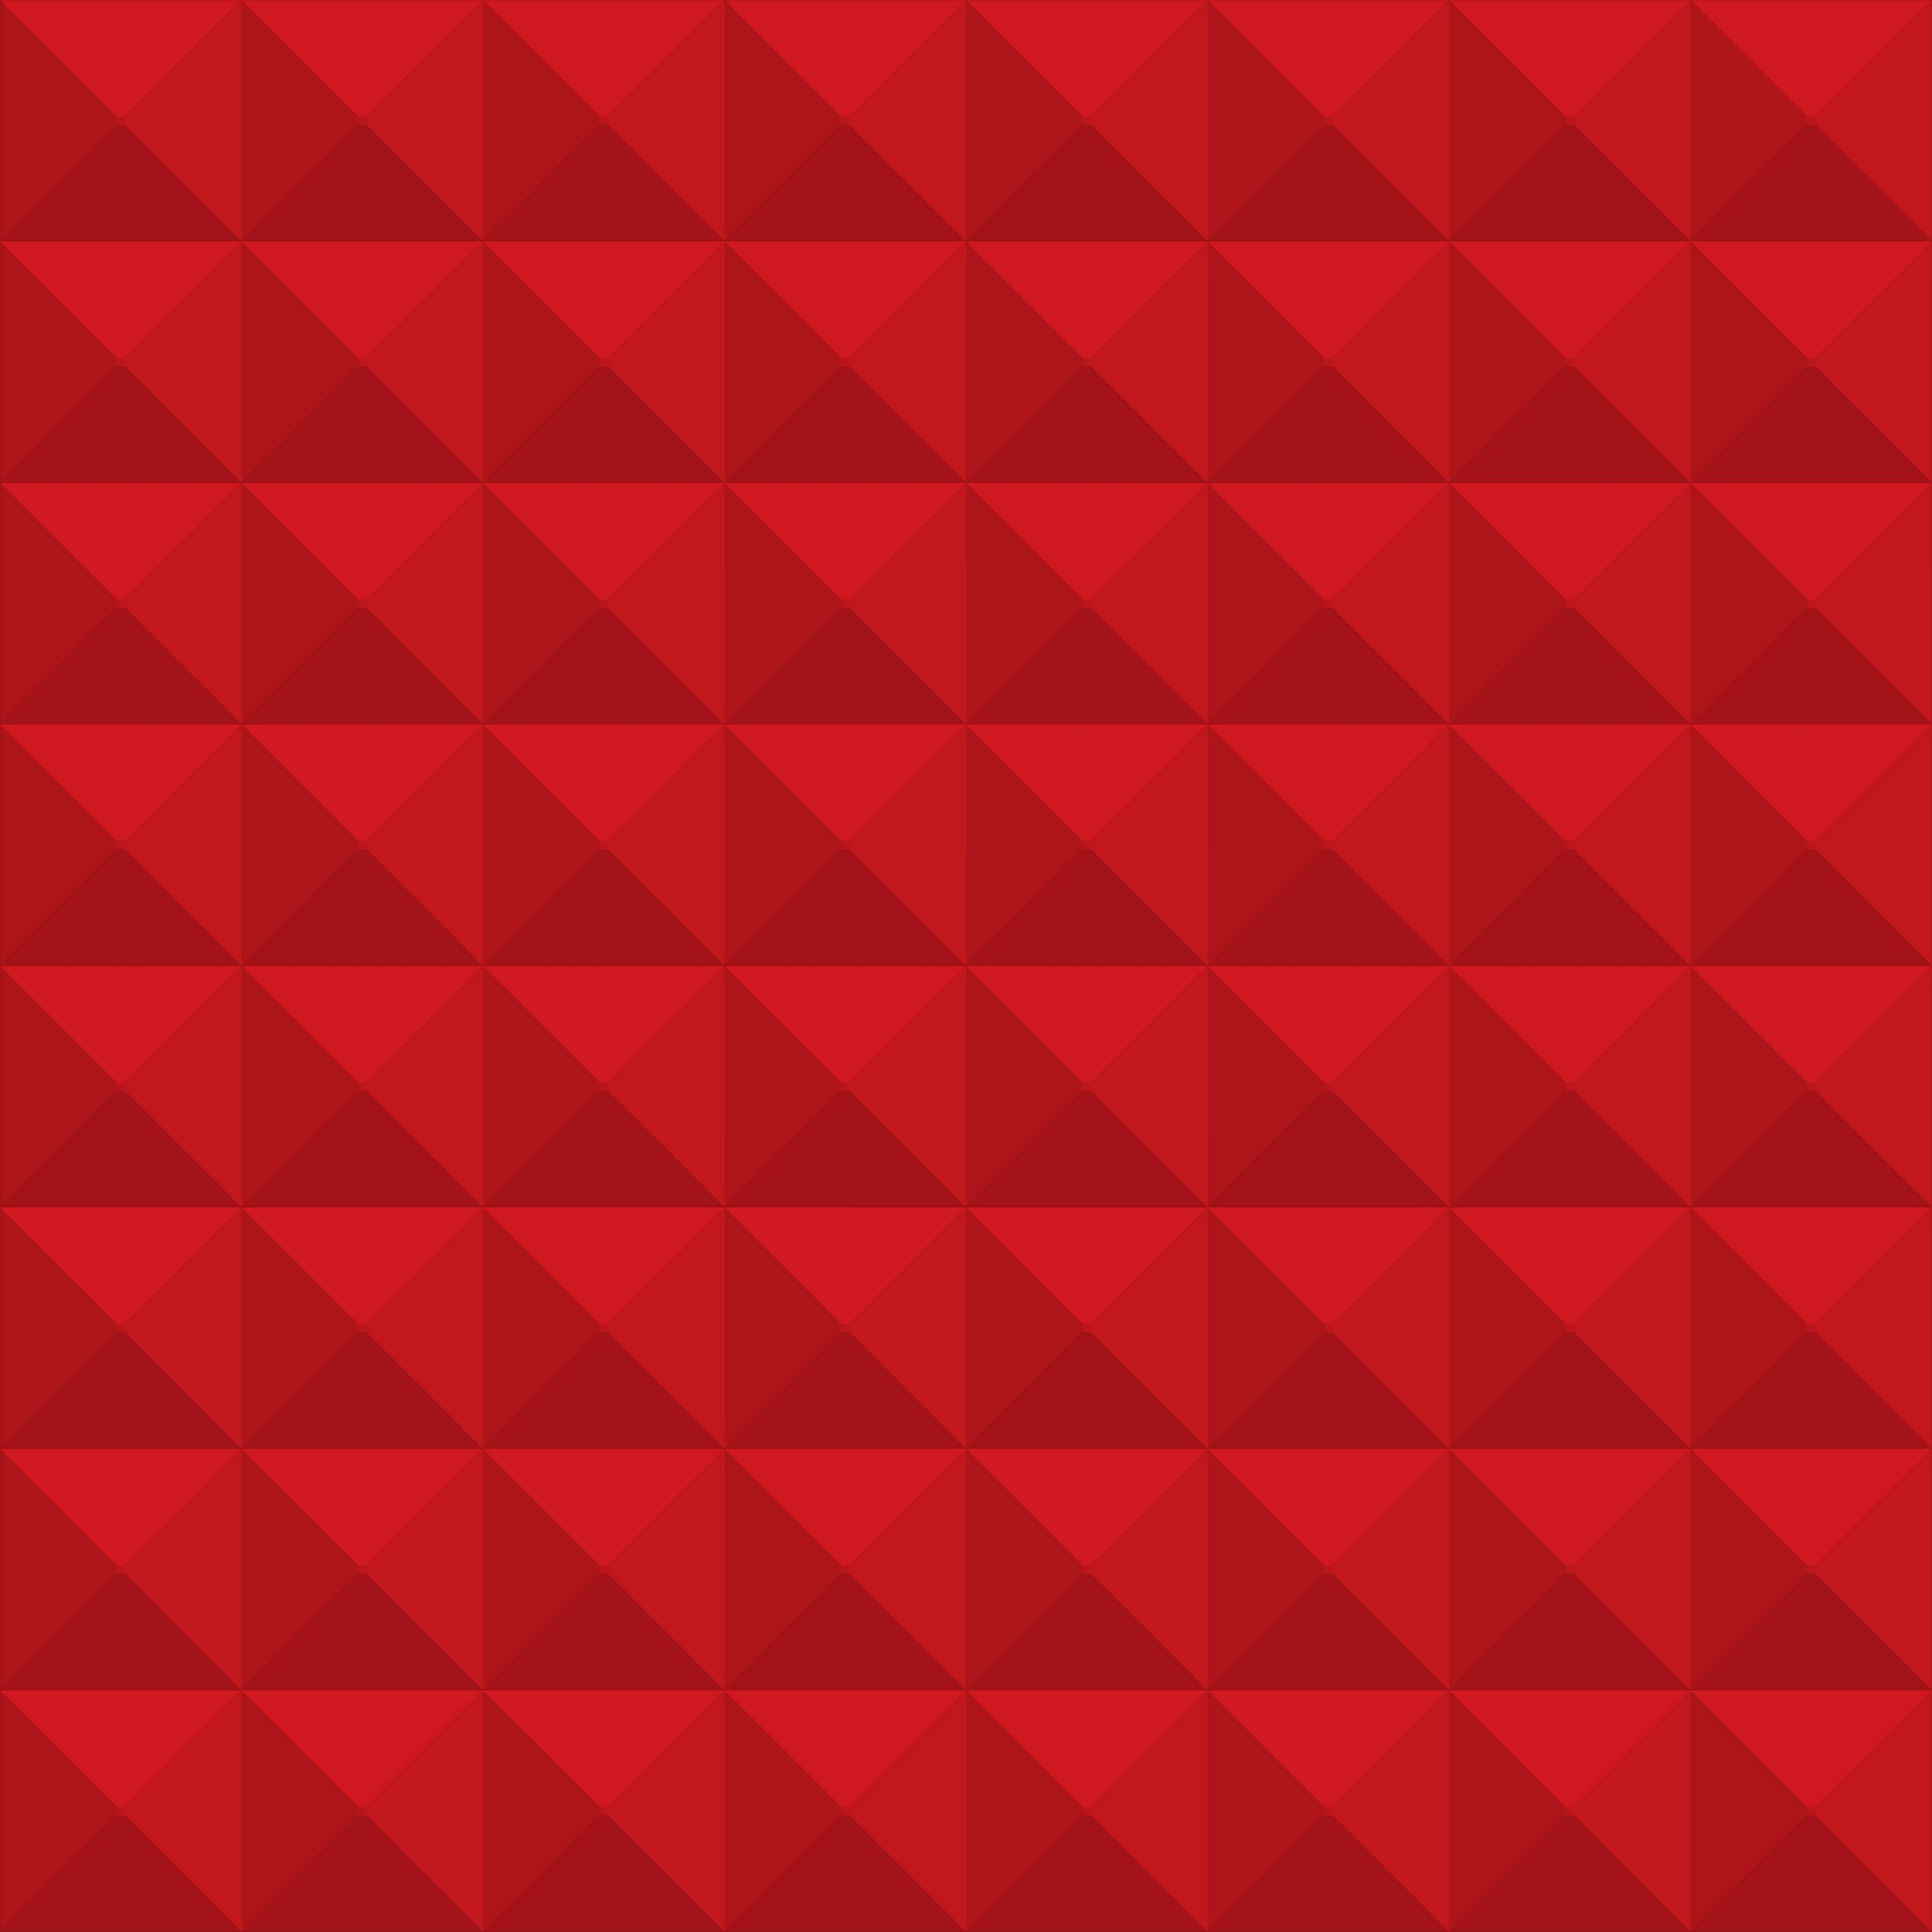 63091 download wallpaper Textures, Texture, Pattern, Raised, Relief, Geometric, Squares, Triangles, Symmetry, Shades screensavers and pictures for free